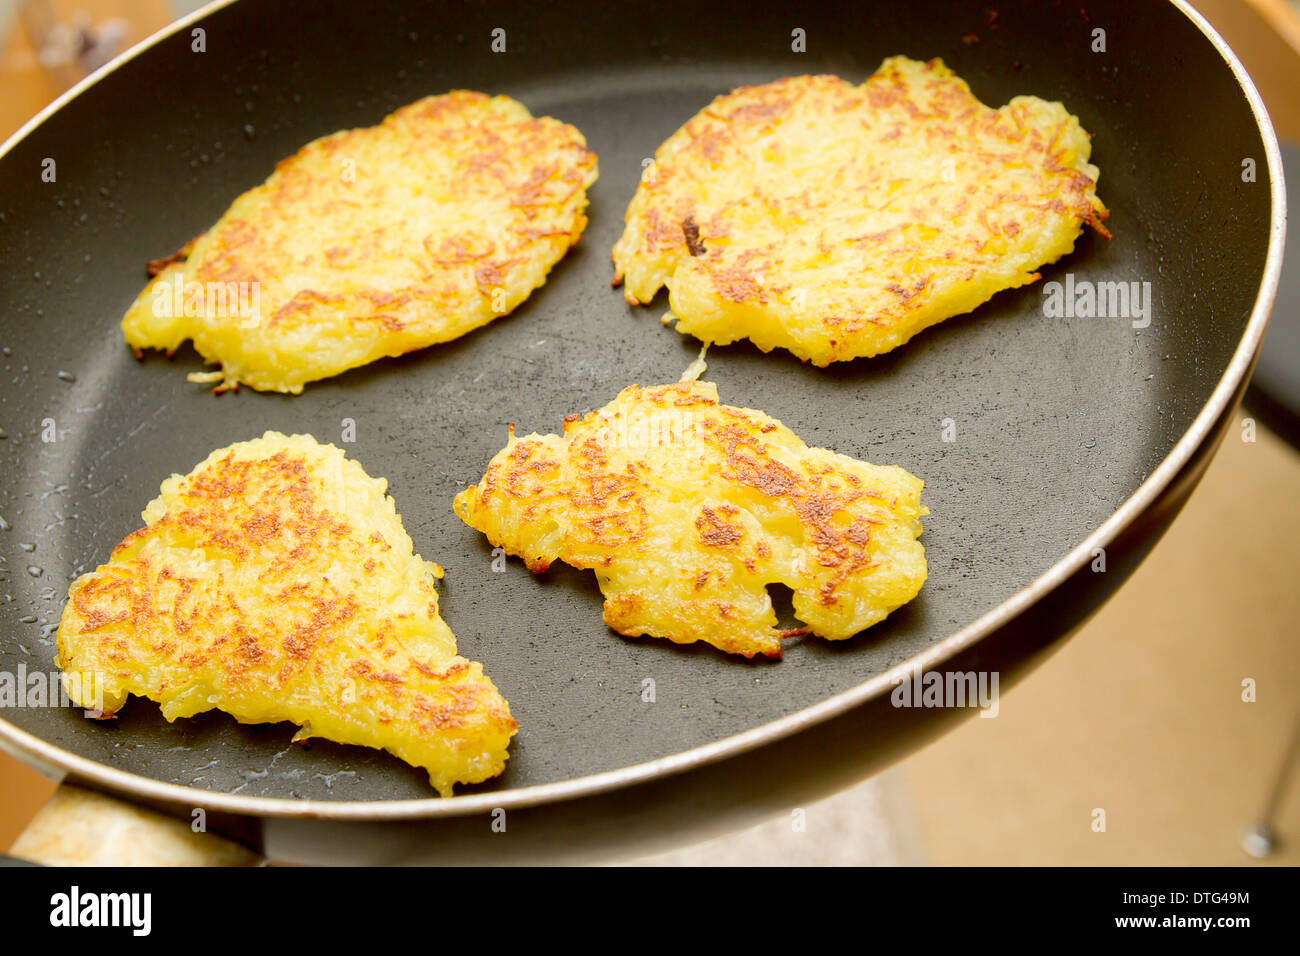 potato fritter in a pan - Stock Image